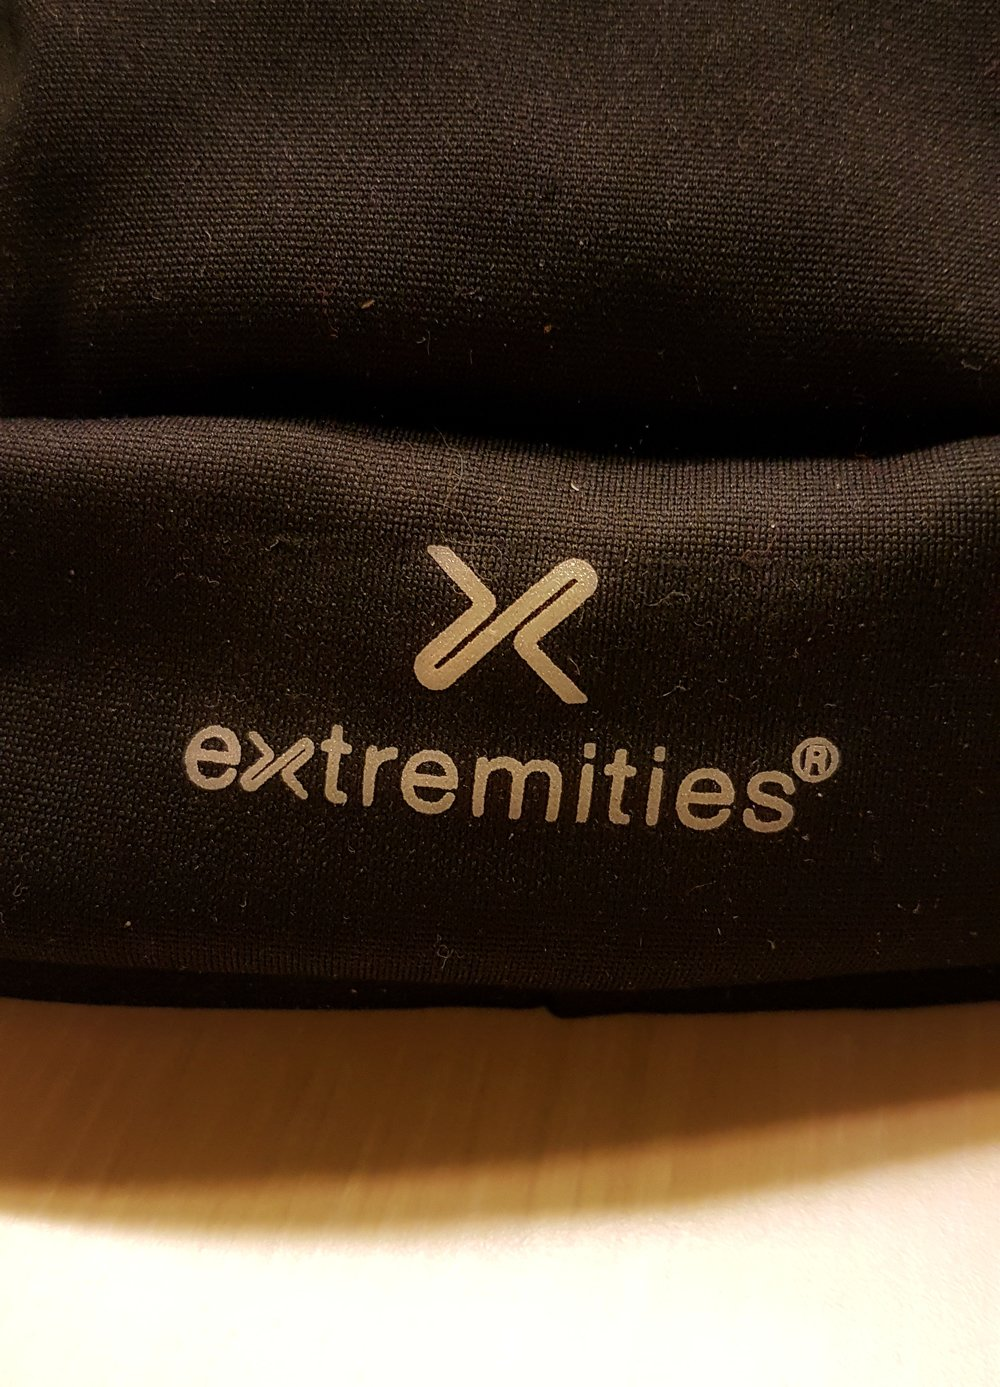 Extremities destinctive branding and great attention to detail.